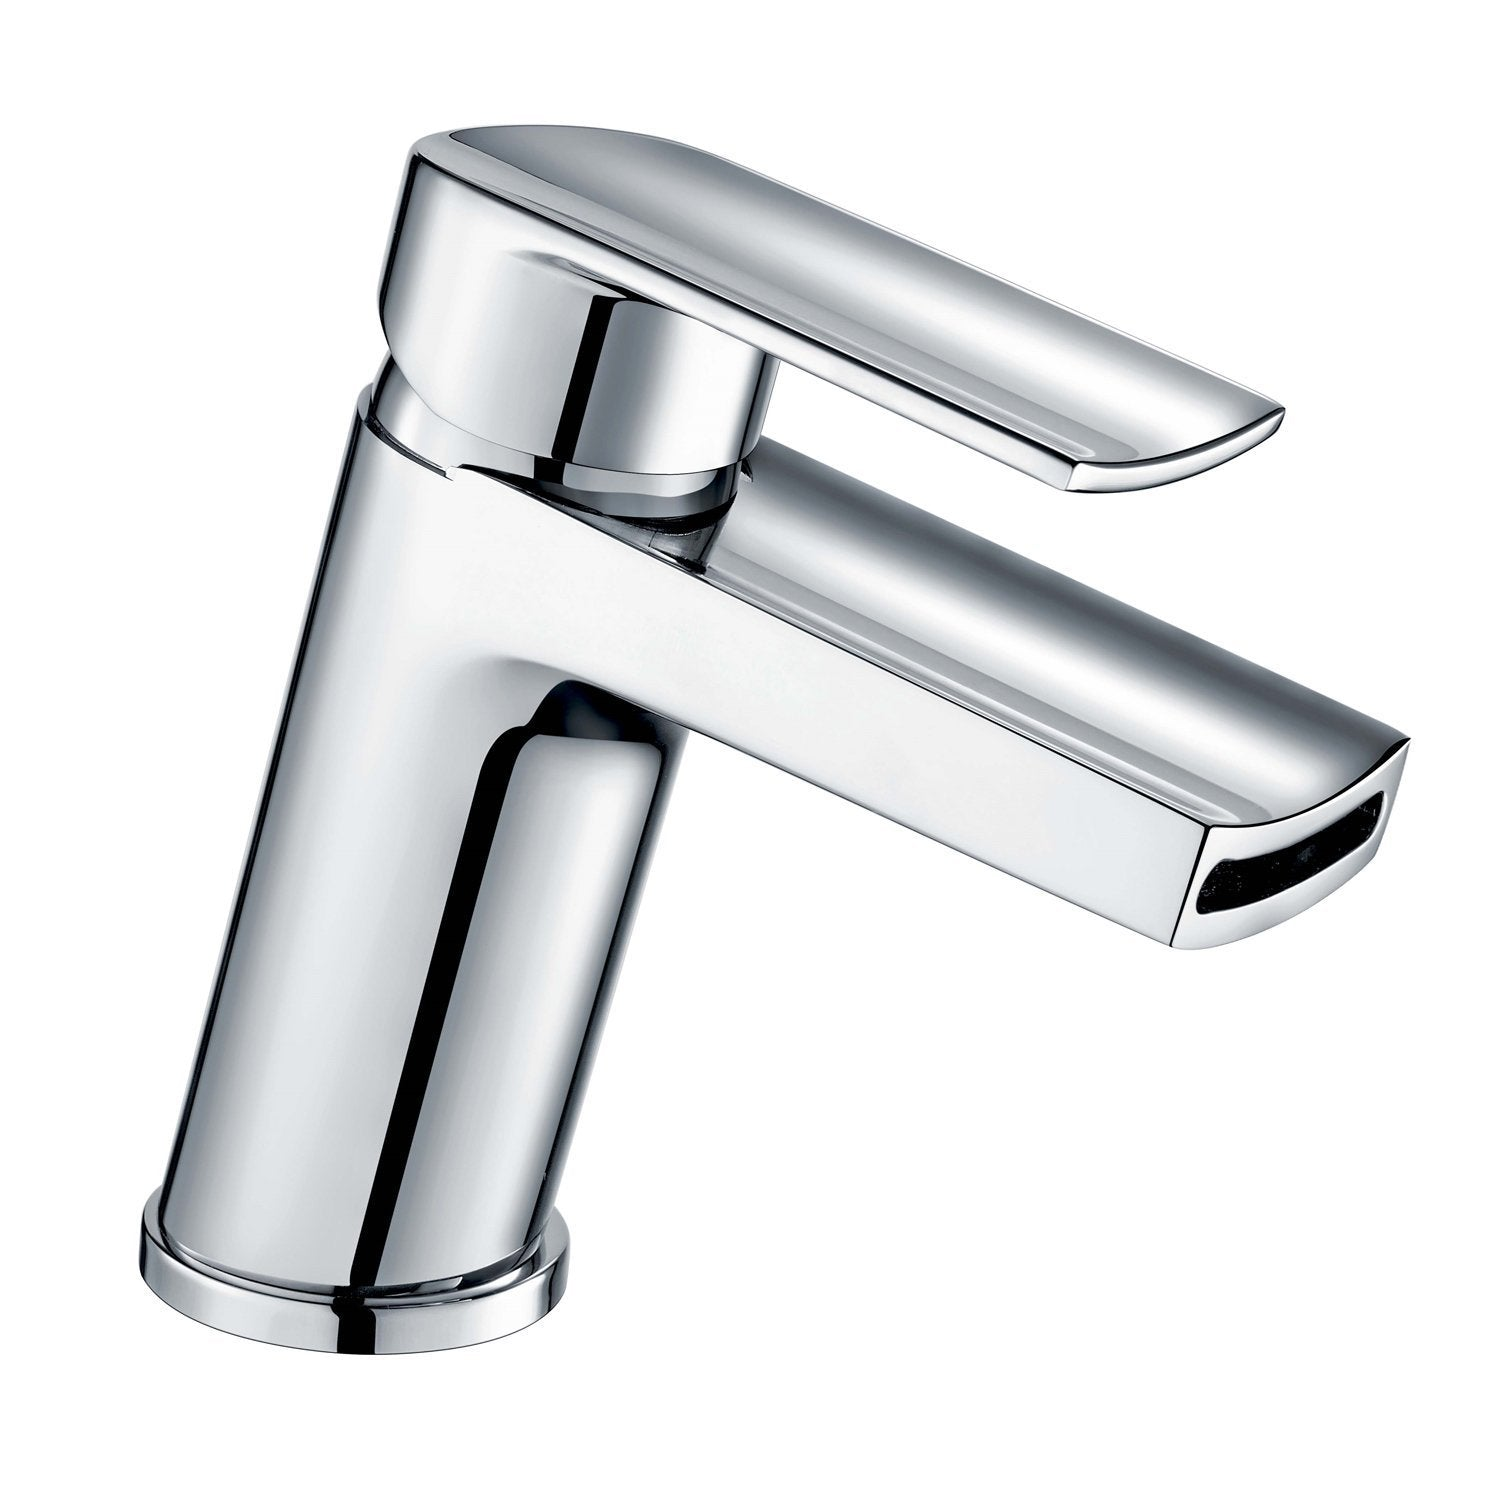 RAK Illusion Mono Basin Mixer Tap Cool Start - Chrome